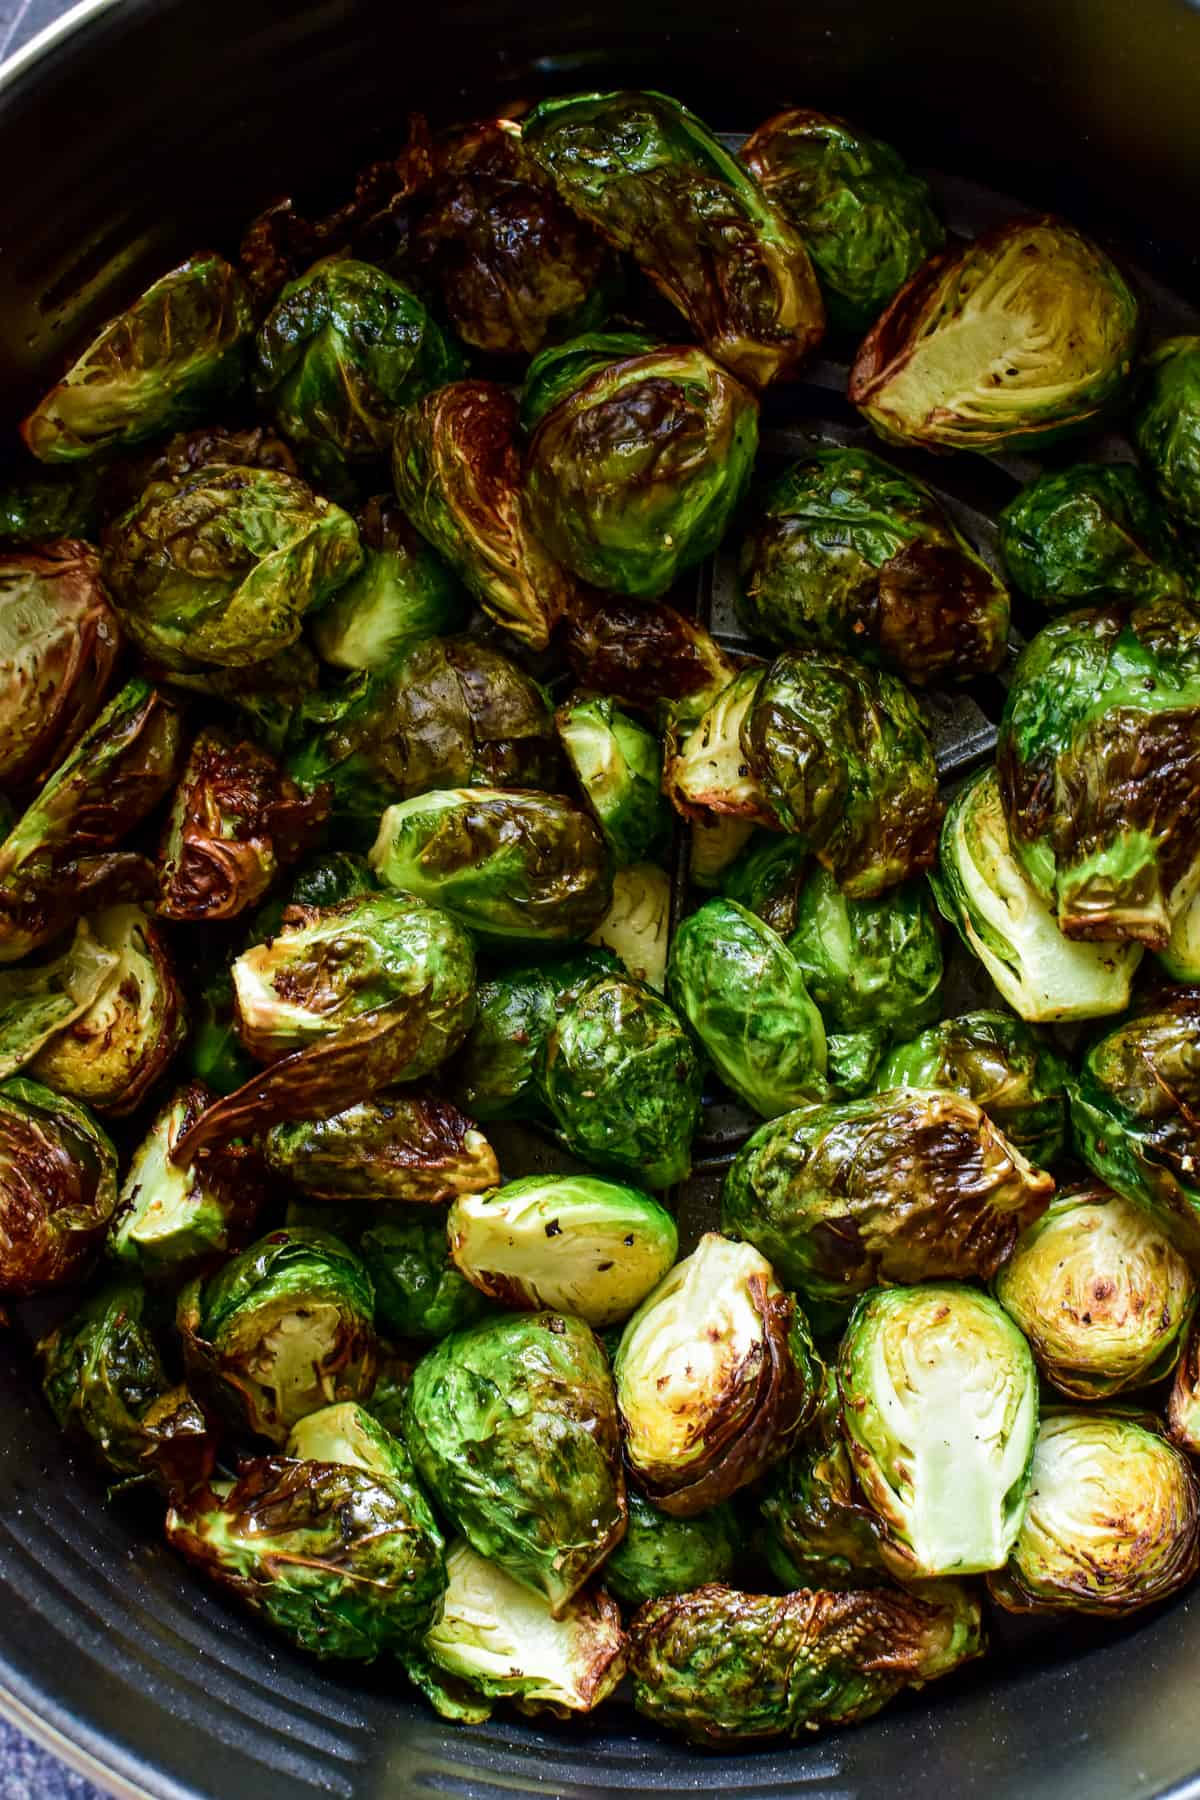 Brussels Sprouts in an air fryer basket